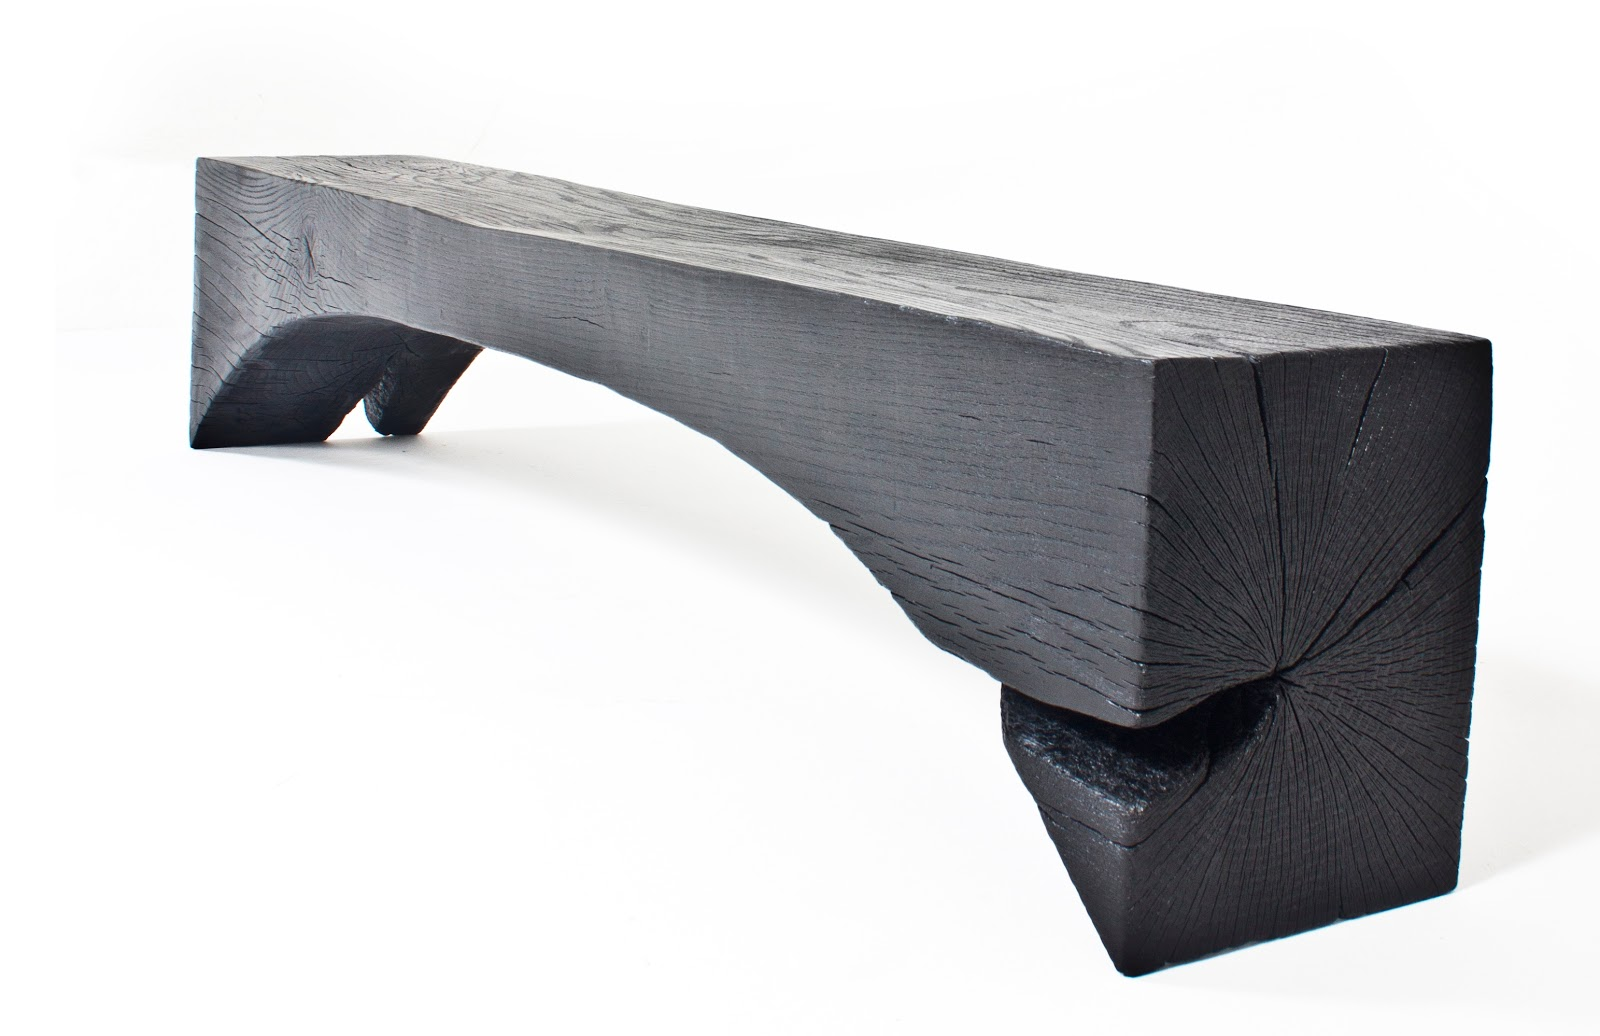 contemporary african furniture. CONTEMPORARY AFRICAN FURNITURE CHARRED PIN-OAK BENCH Phases Africa Furniture \u0026 Decor Contemporary African T